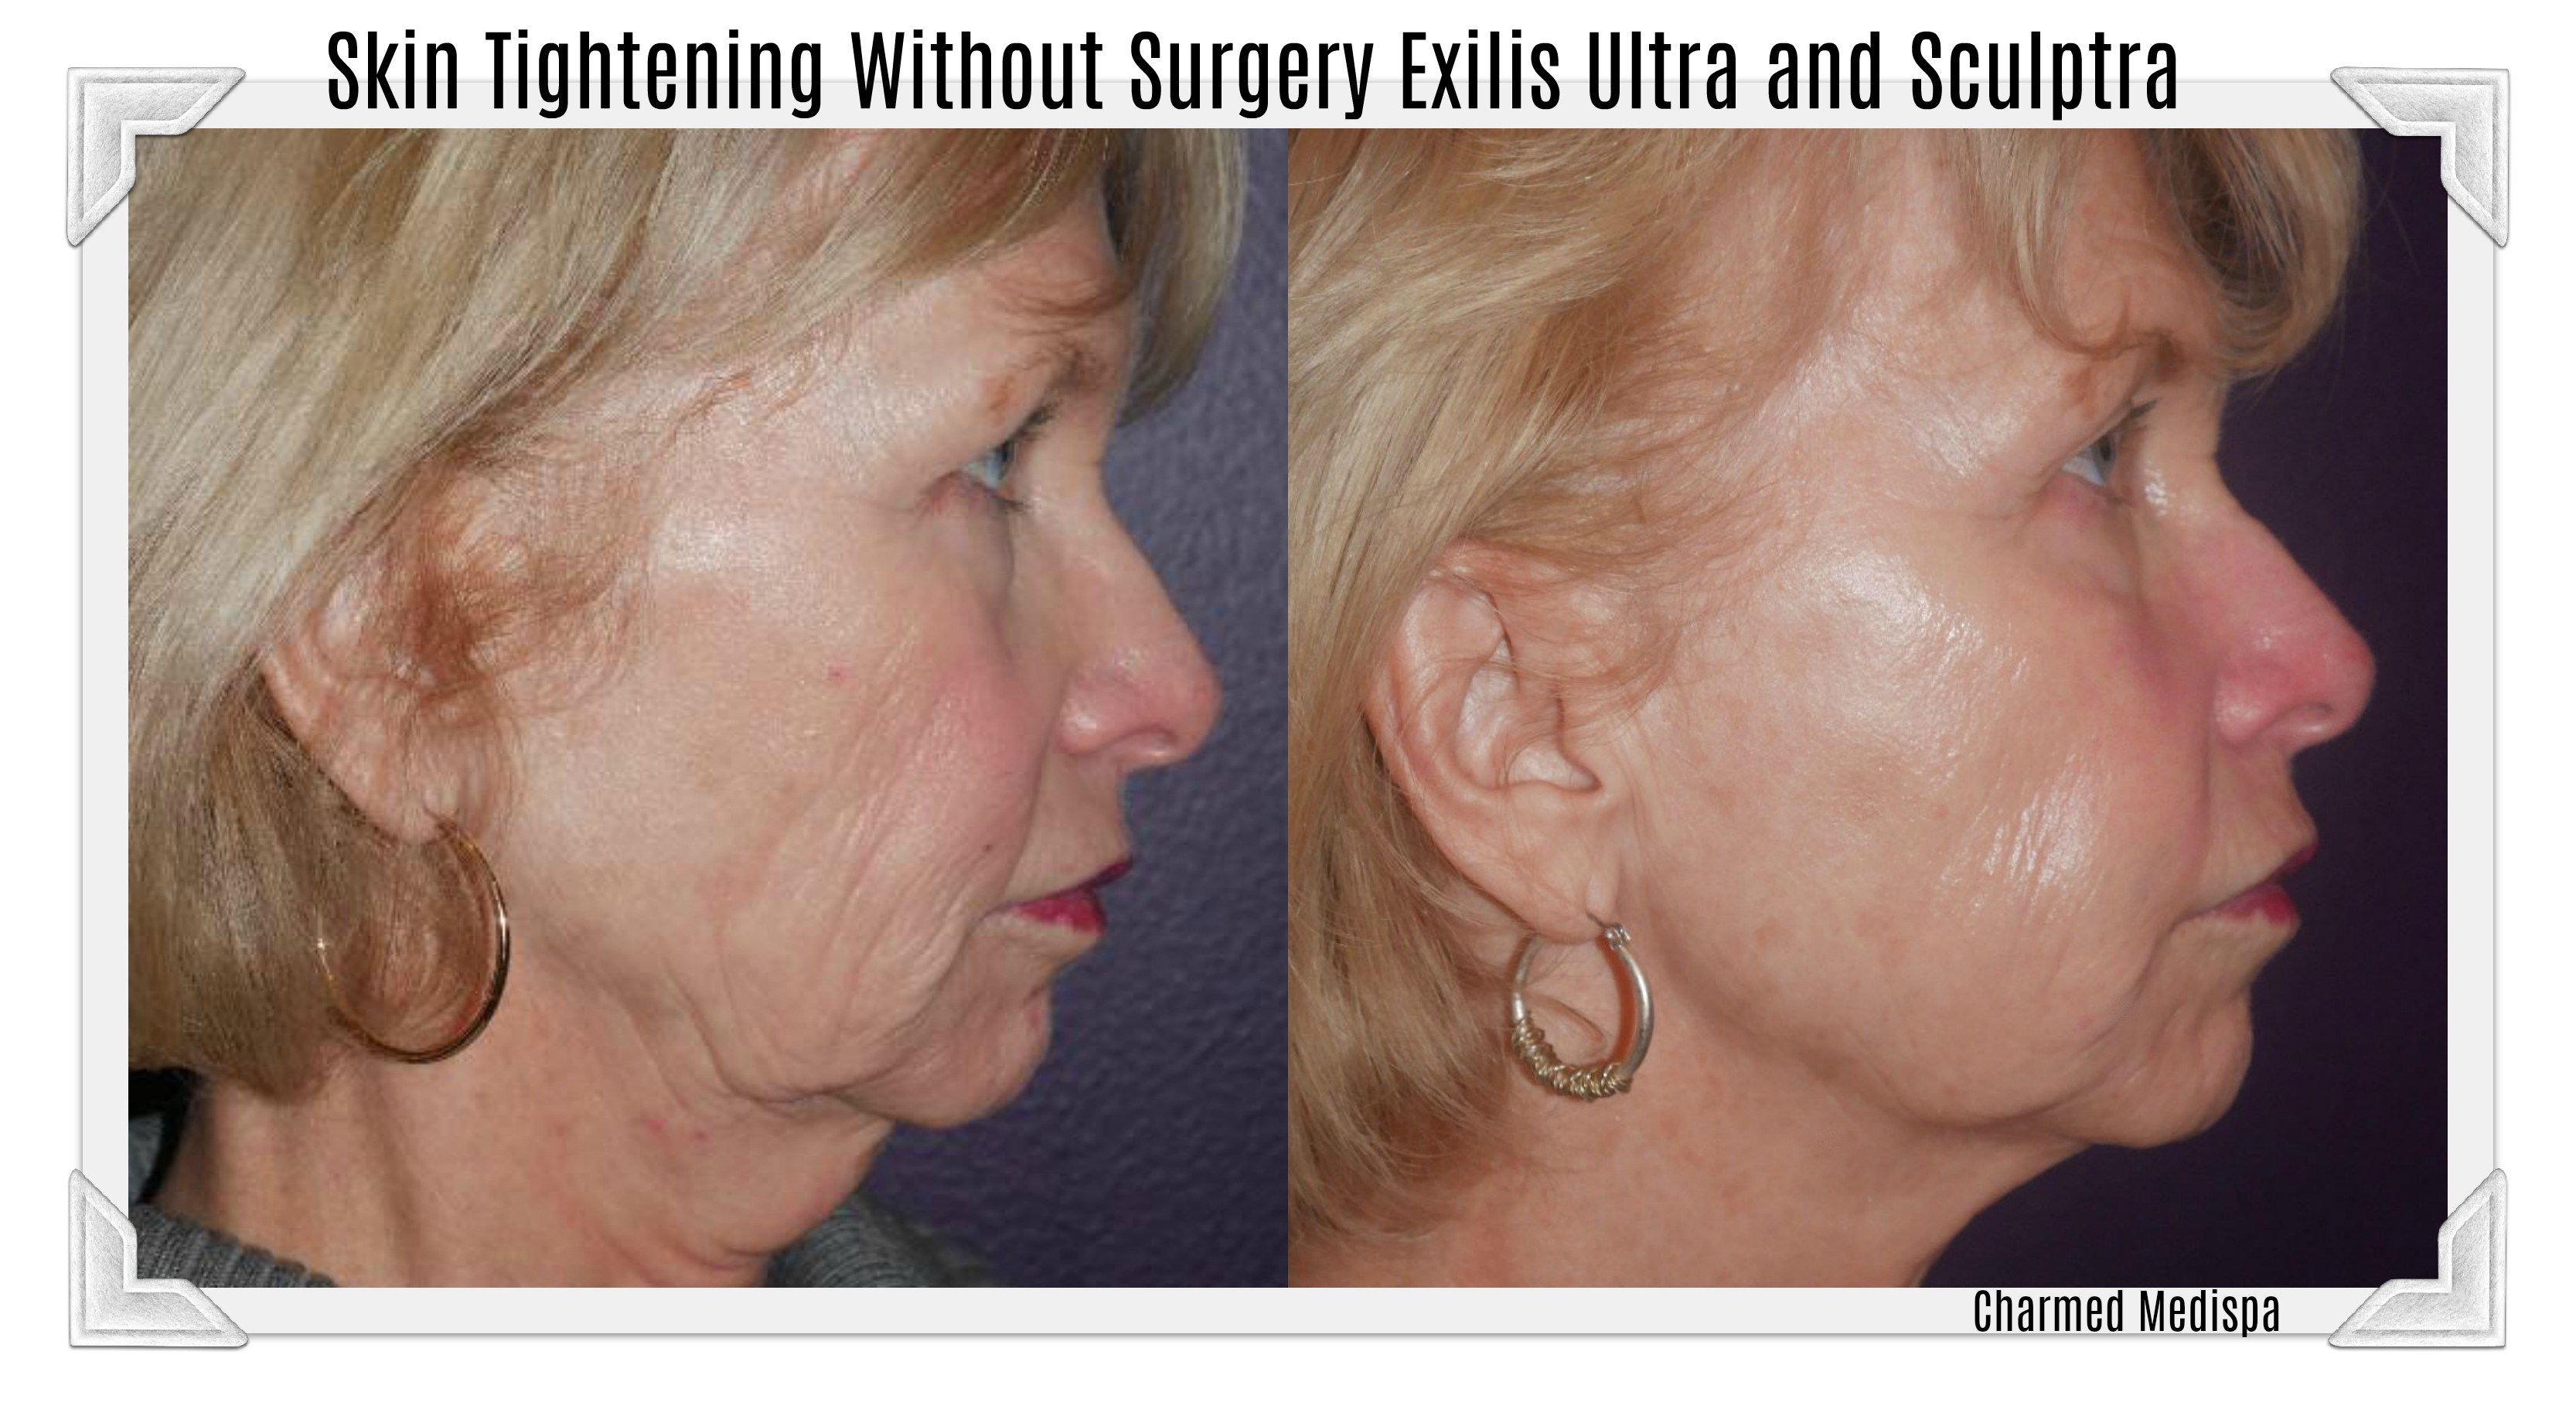 sculptra exilis ultra face neck